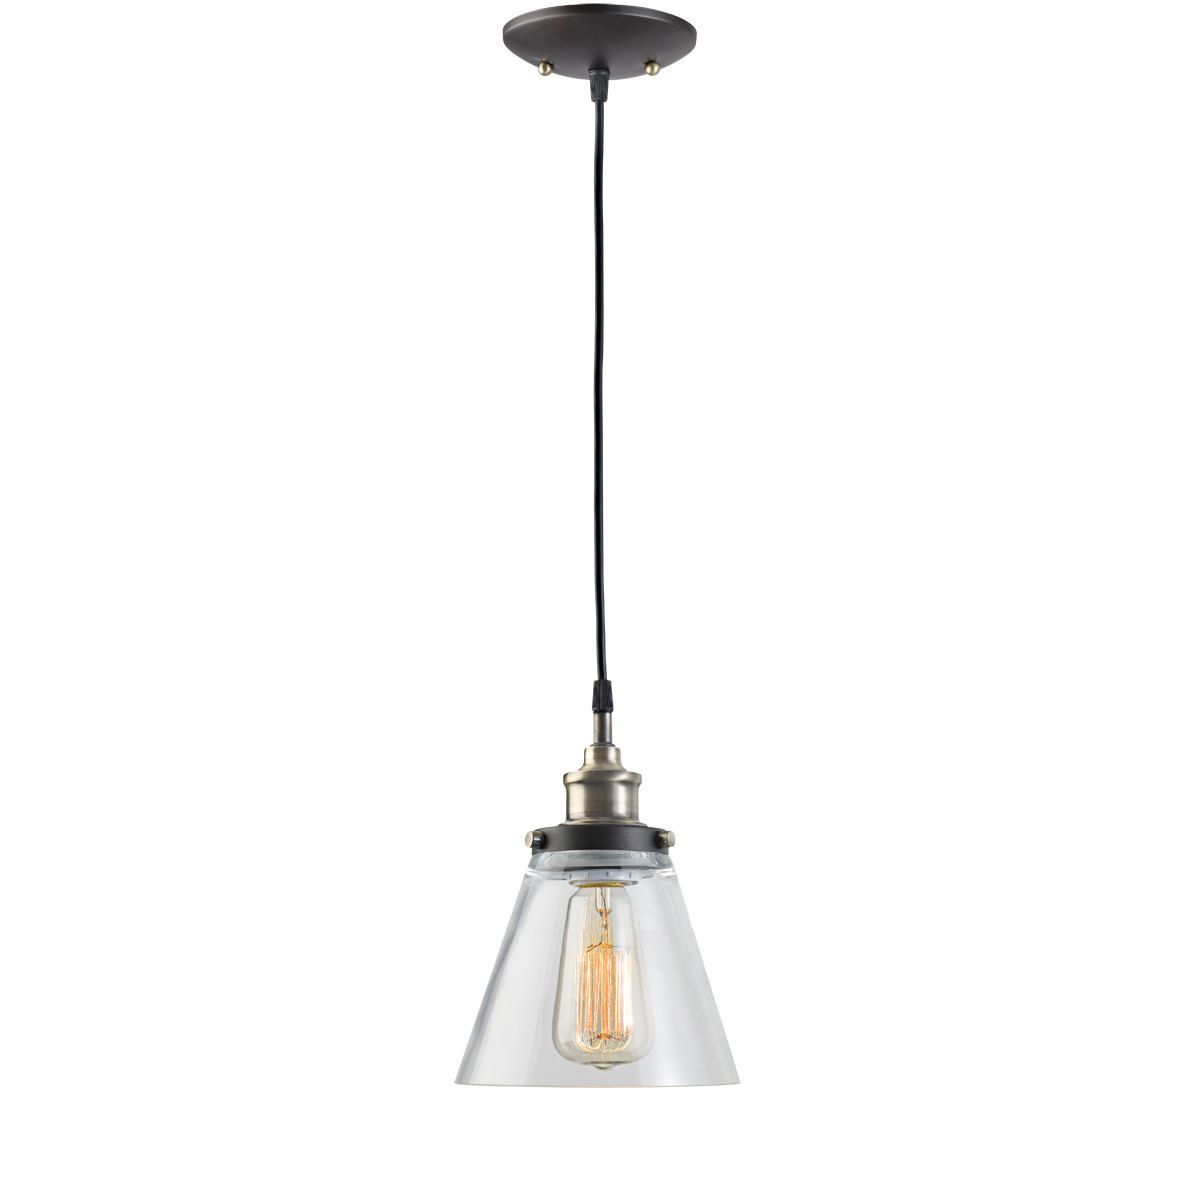 Pendant light fixture antique brass finish with zoomed image